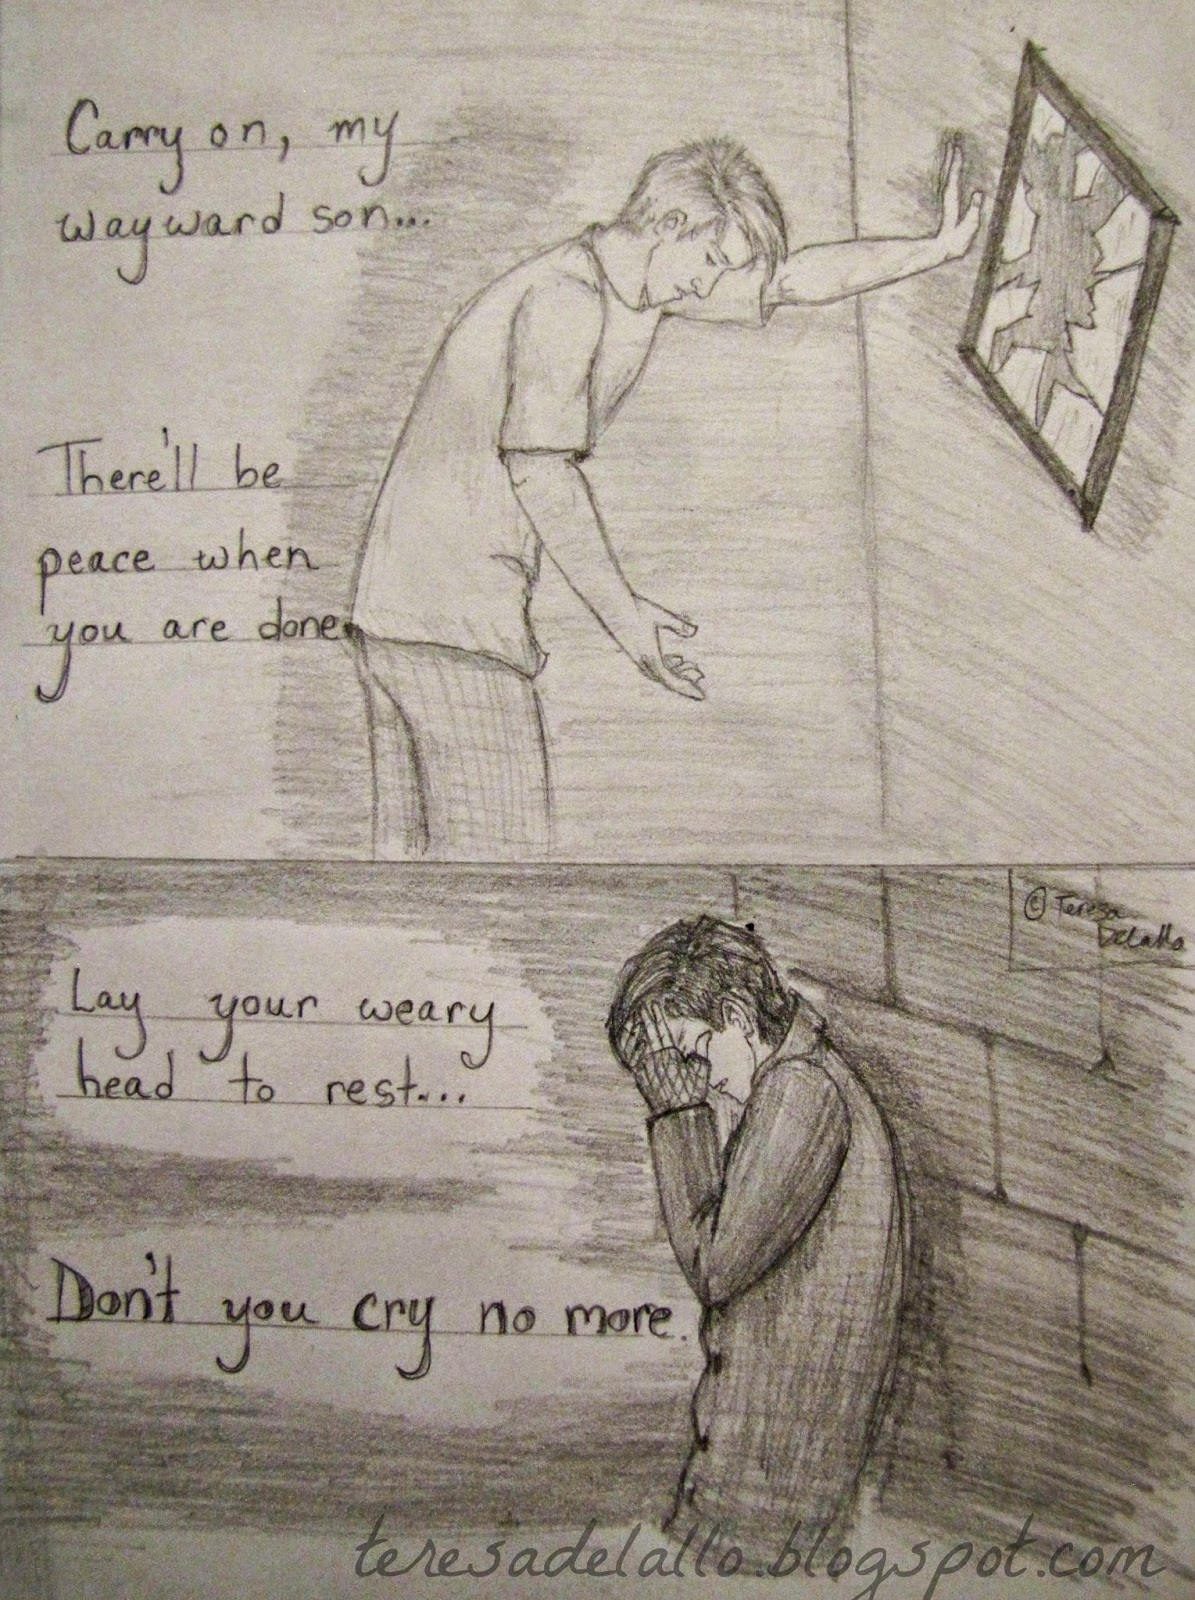 Sad Drawings That Will Make You Cry